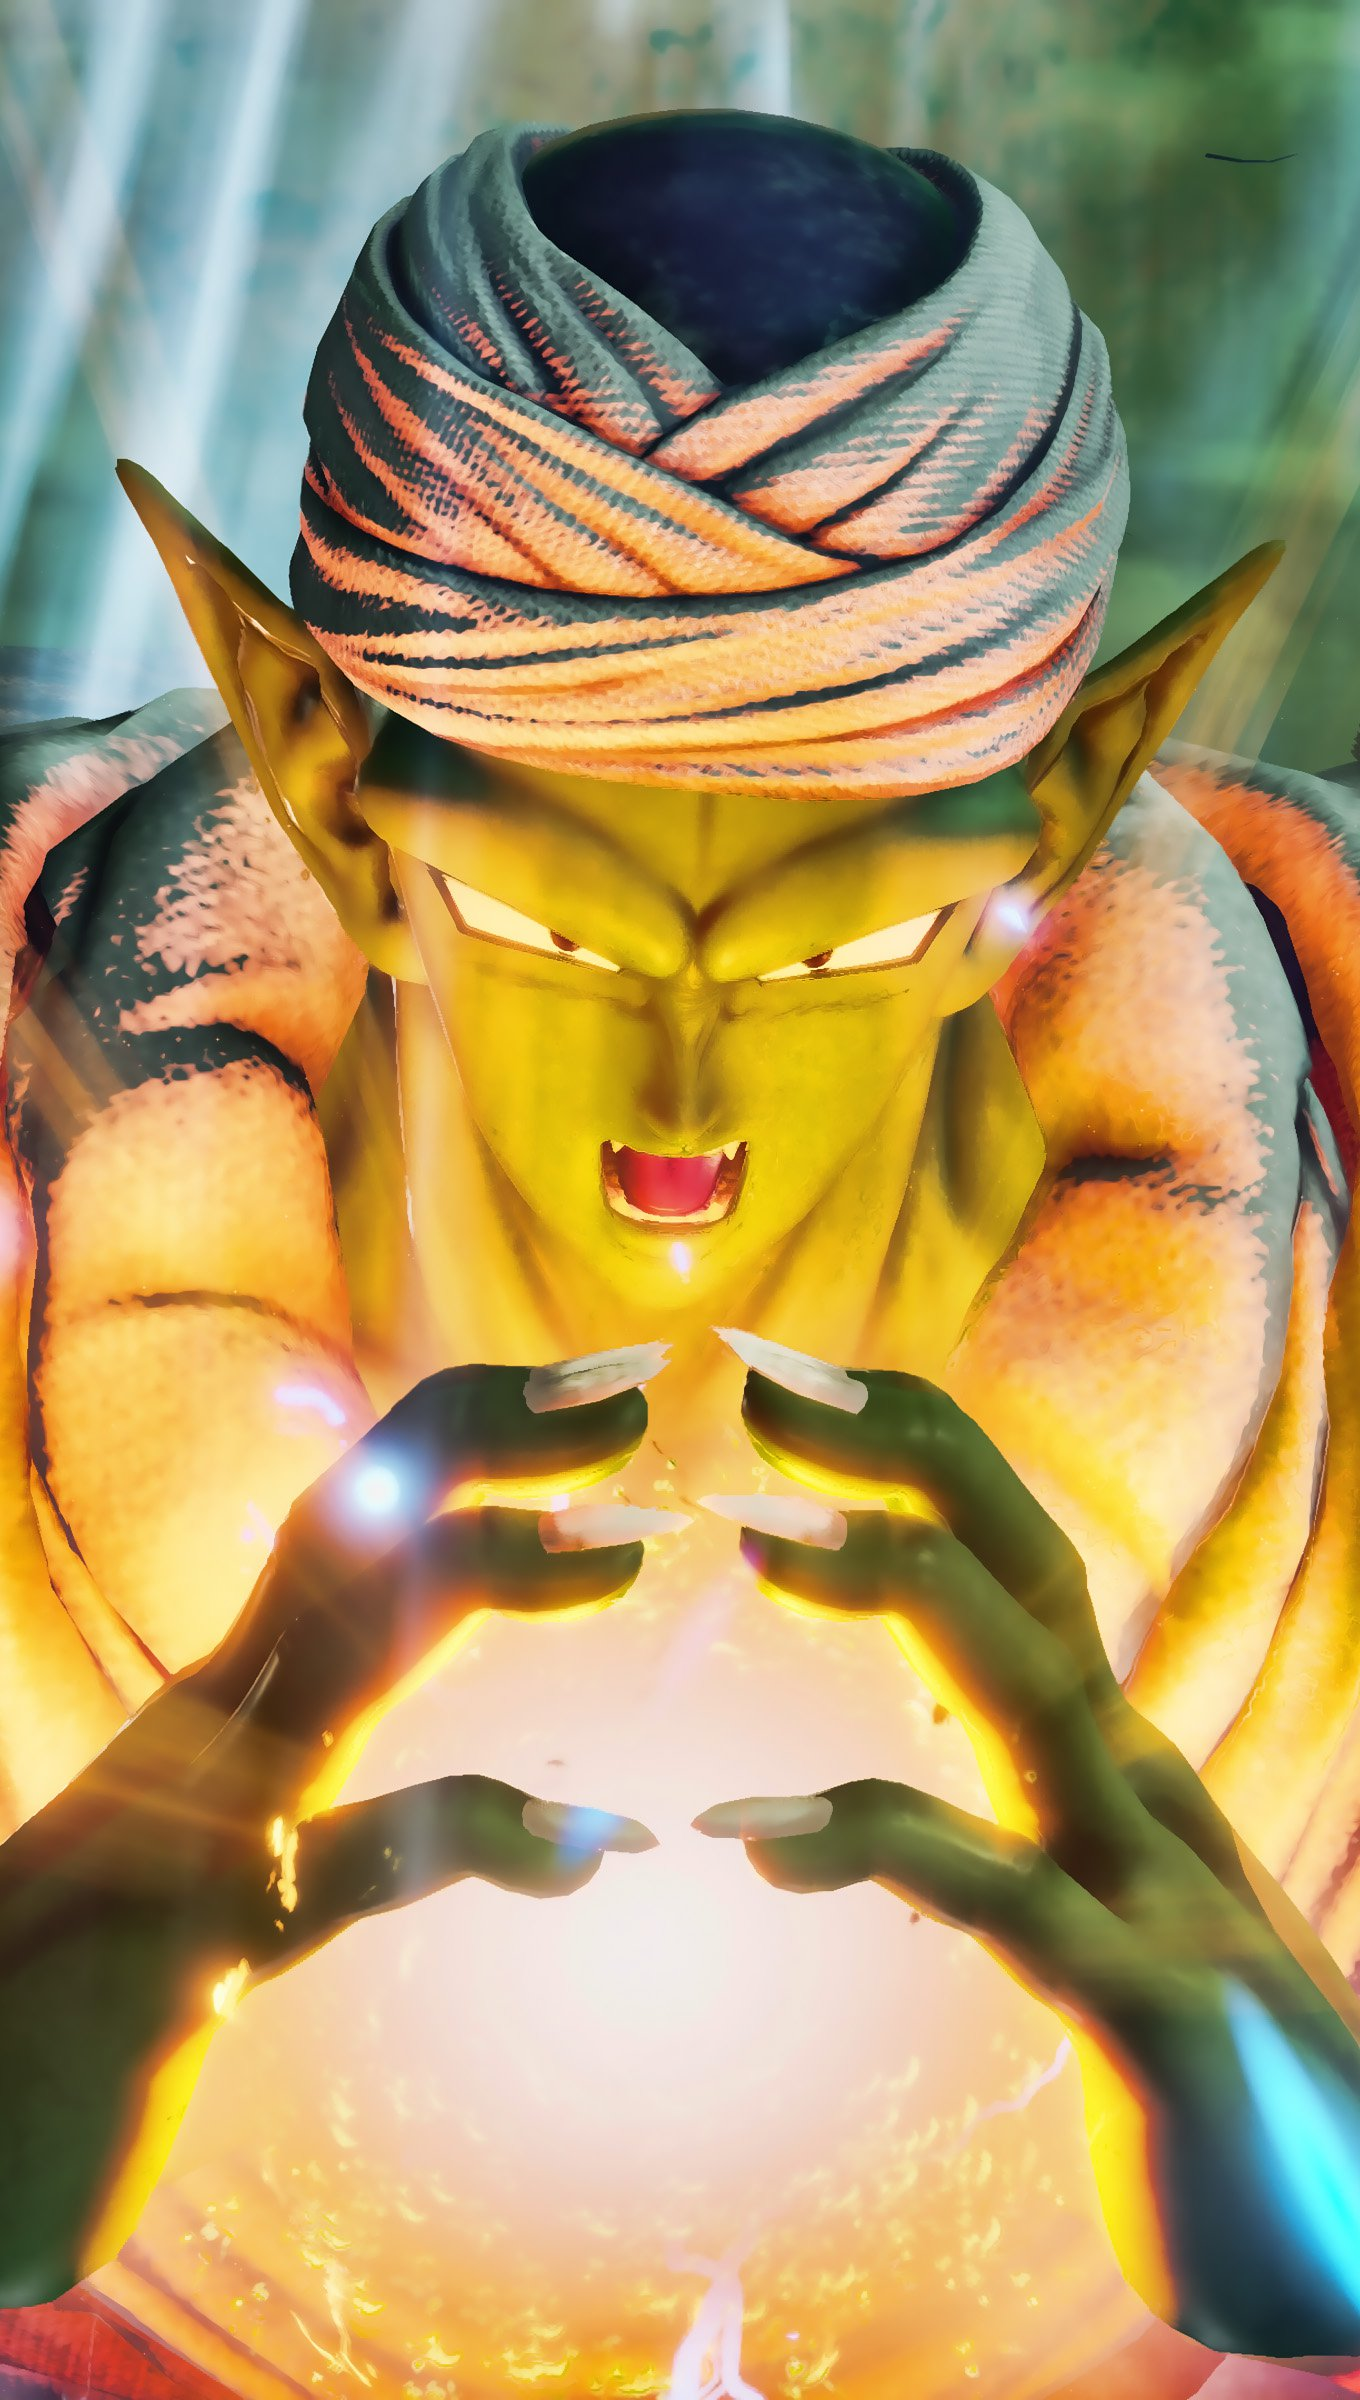 Fondos de pantalla Anime Piccolo de Dragon Ball Vertical